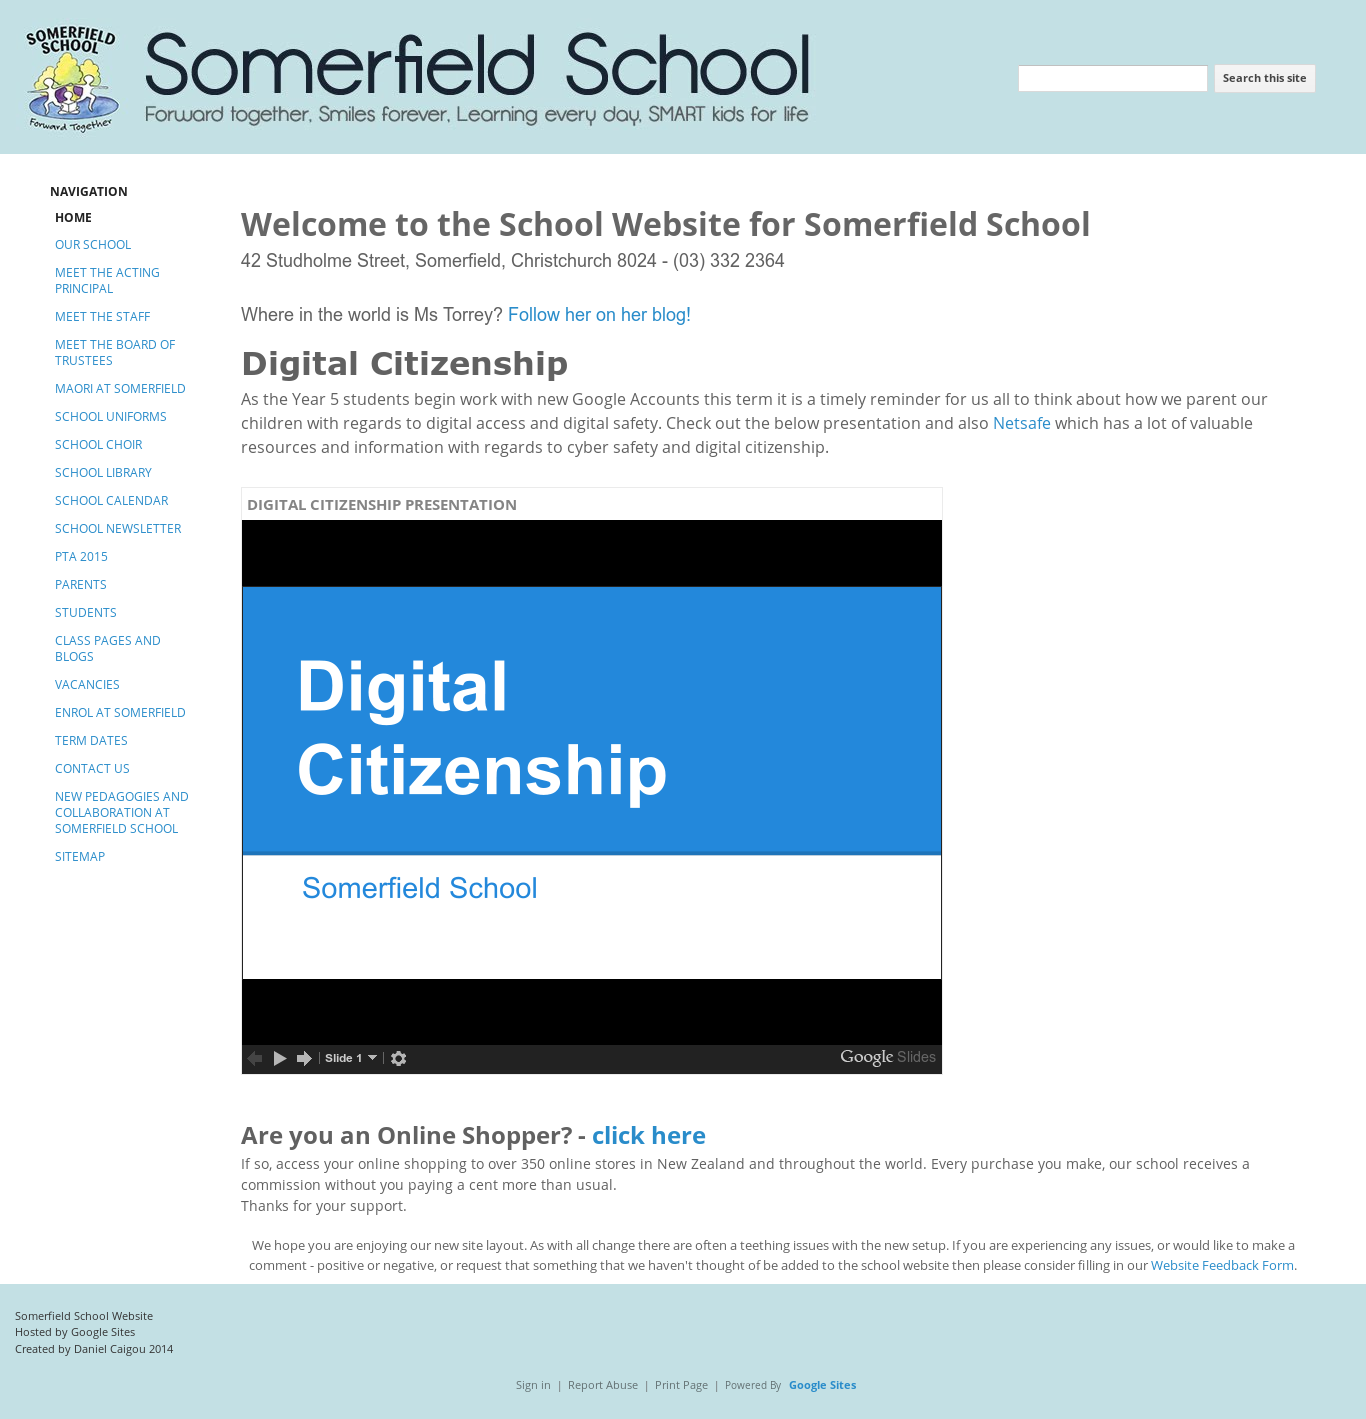 Somerfield School Competitors, Revenue and Employees - Owler